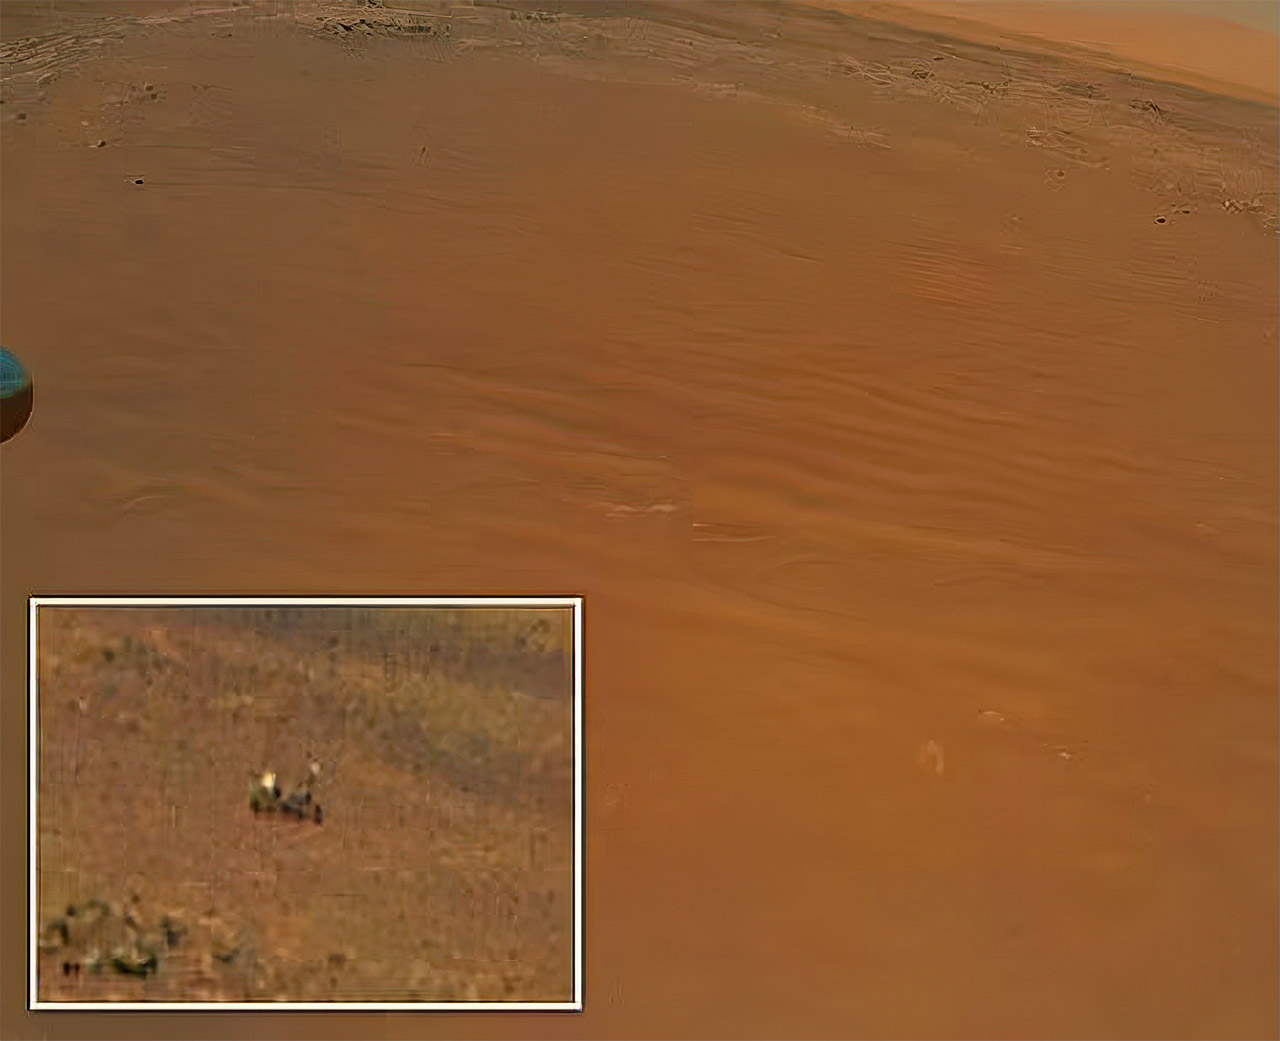 NASA Ingenuity Helicopter Mars Perseverance Rover 11th Flight